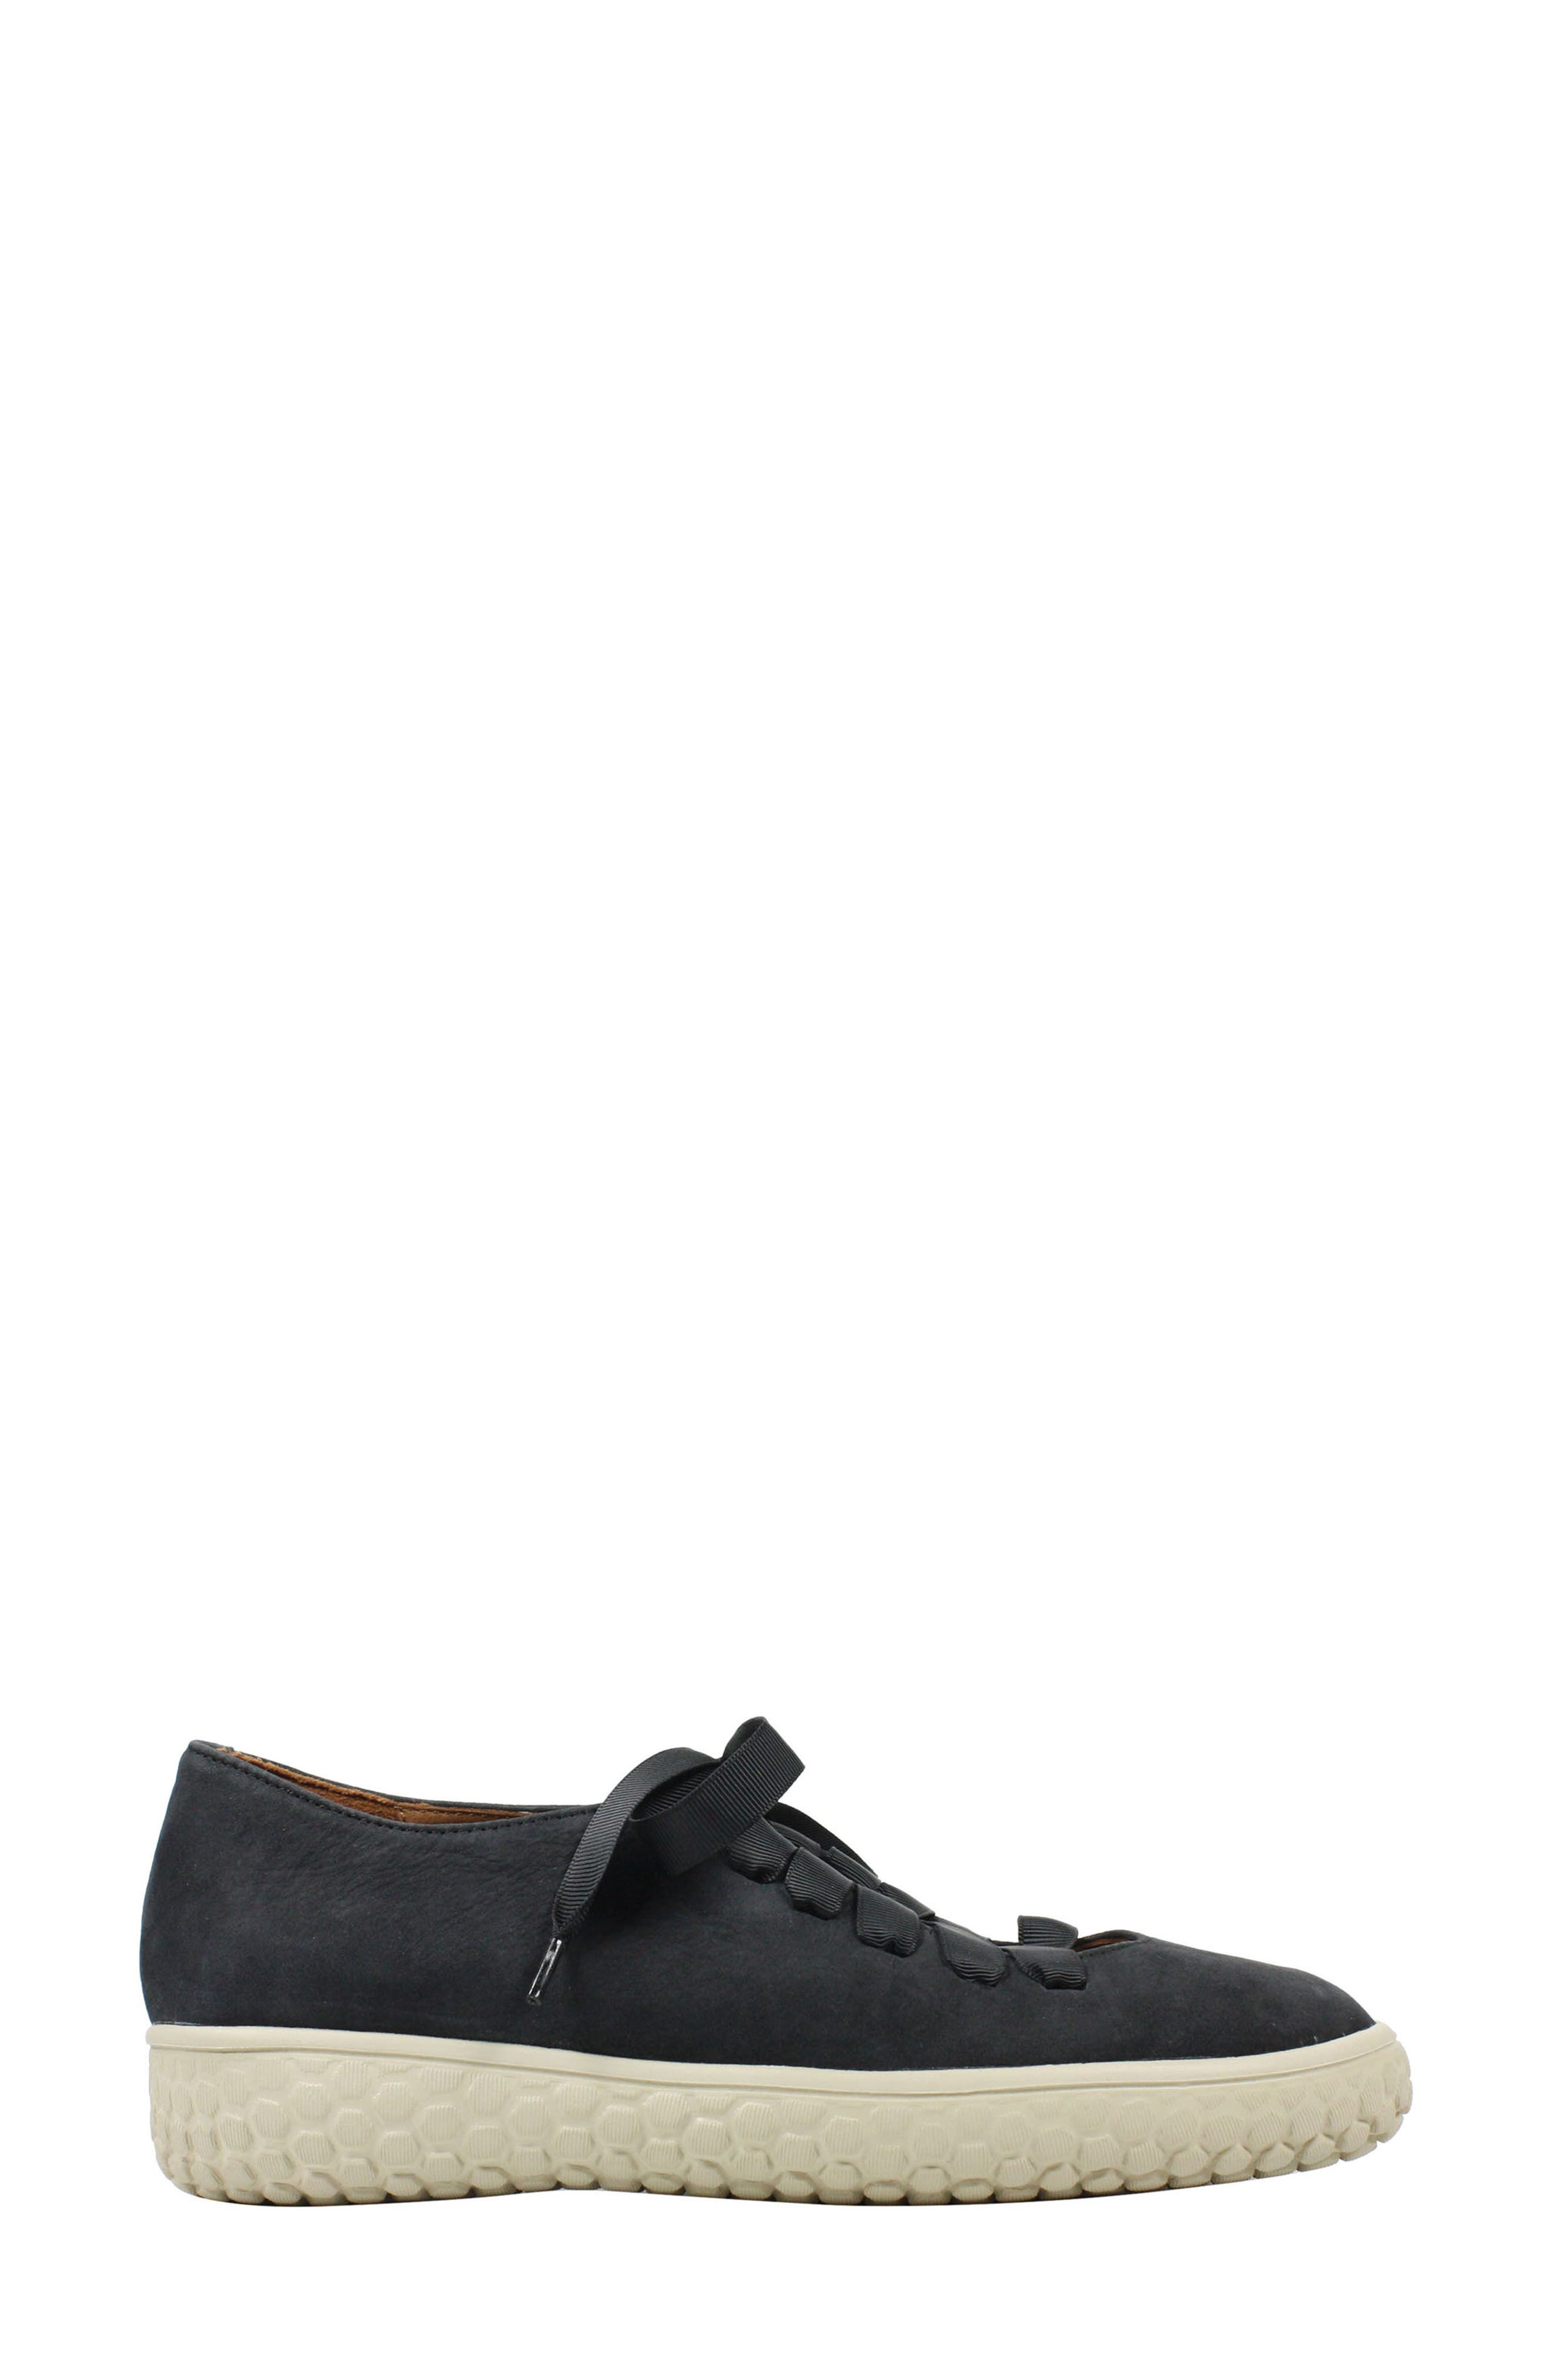 Zaheera Sneaker,                             Alternate thumbnail 3, color,                             Black Nubuck Leather